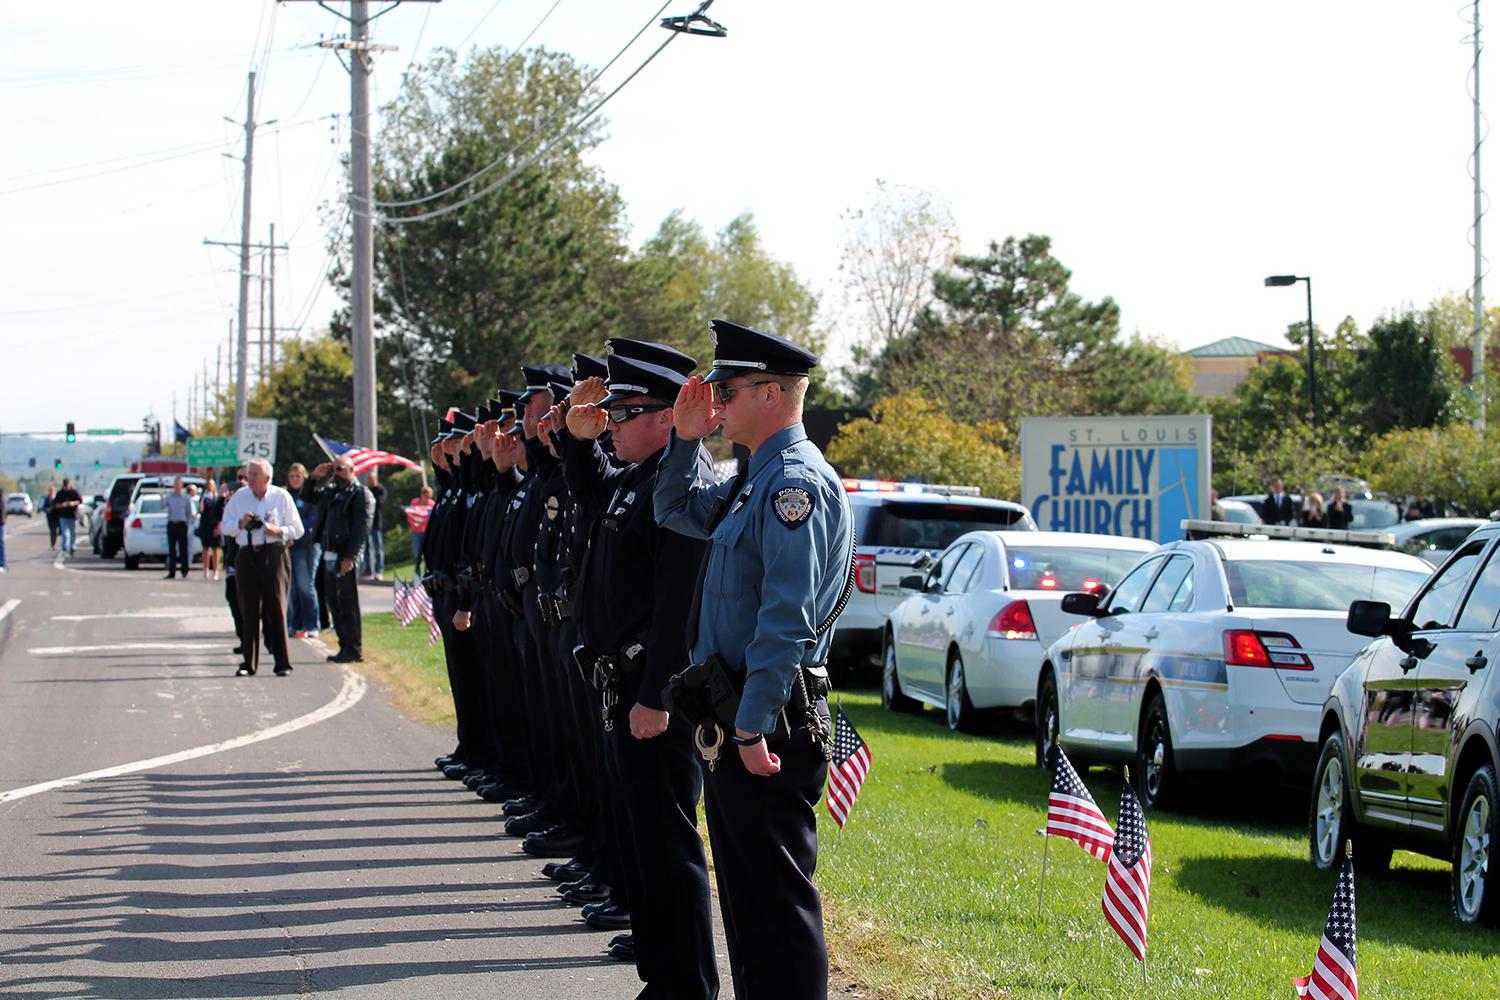 Wonderful St Louis Family Church Chesterfield #1: Local_officers_salute_hearse_2.jpg